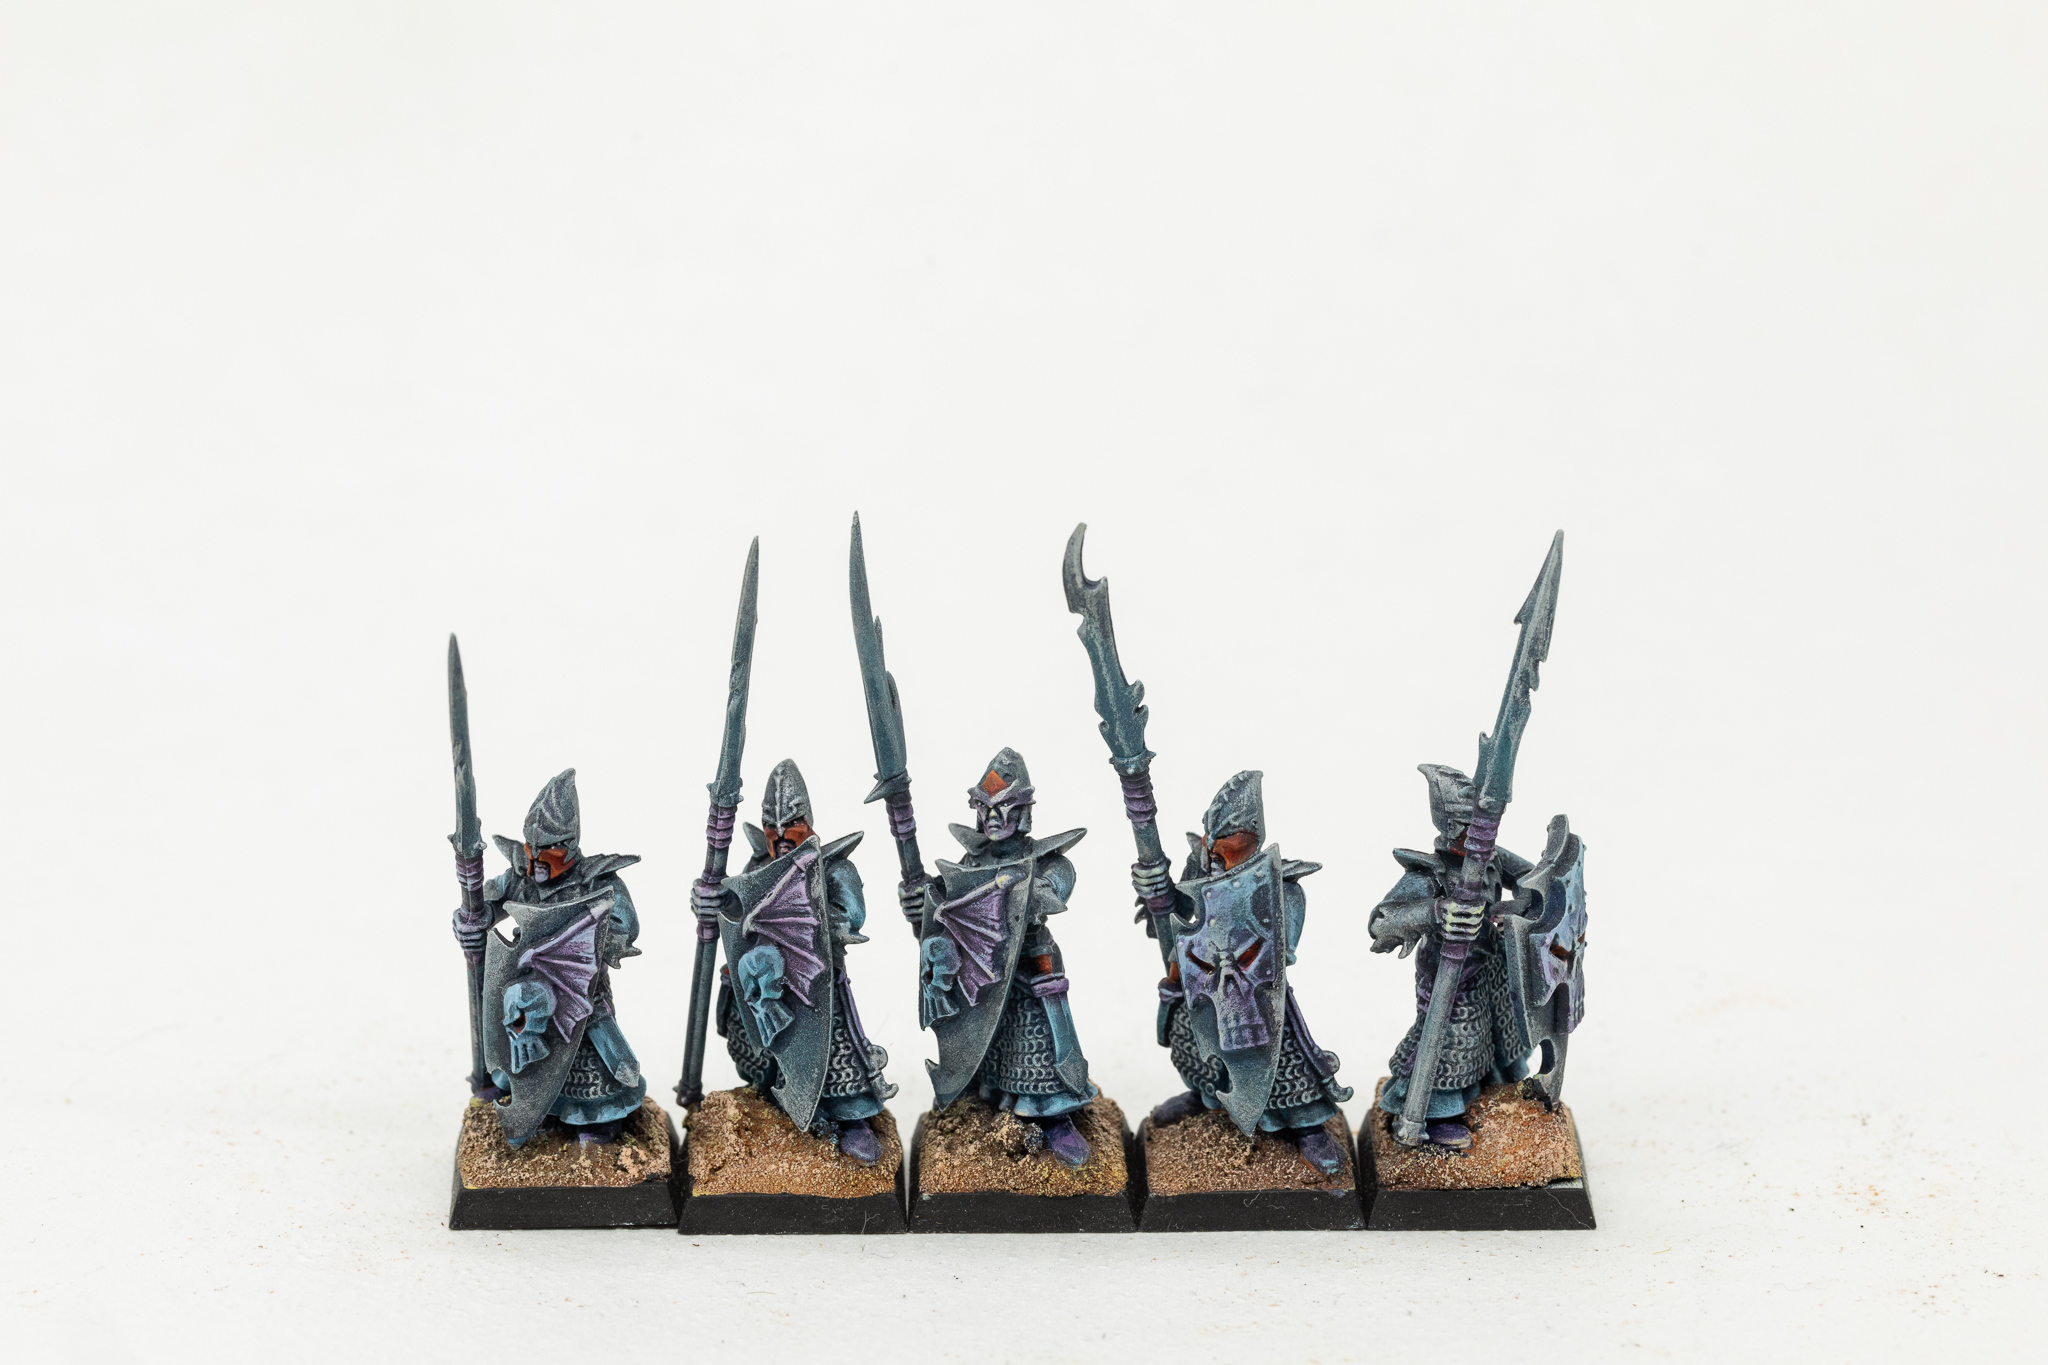 vente-figurines-elfesnoirs0017.jpg